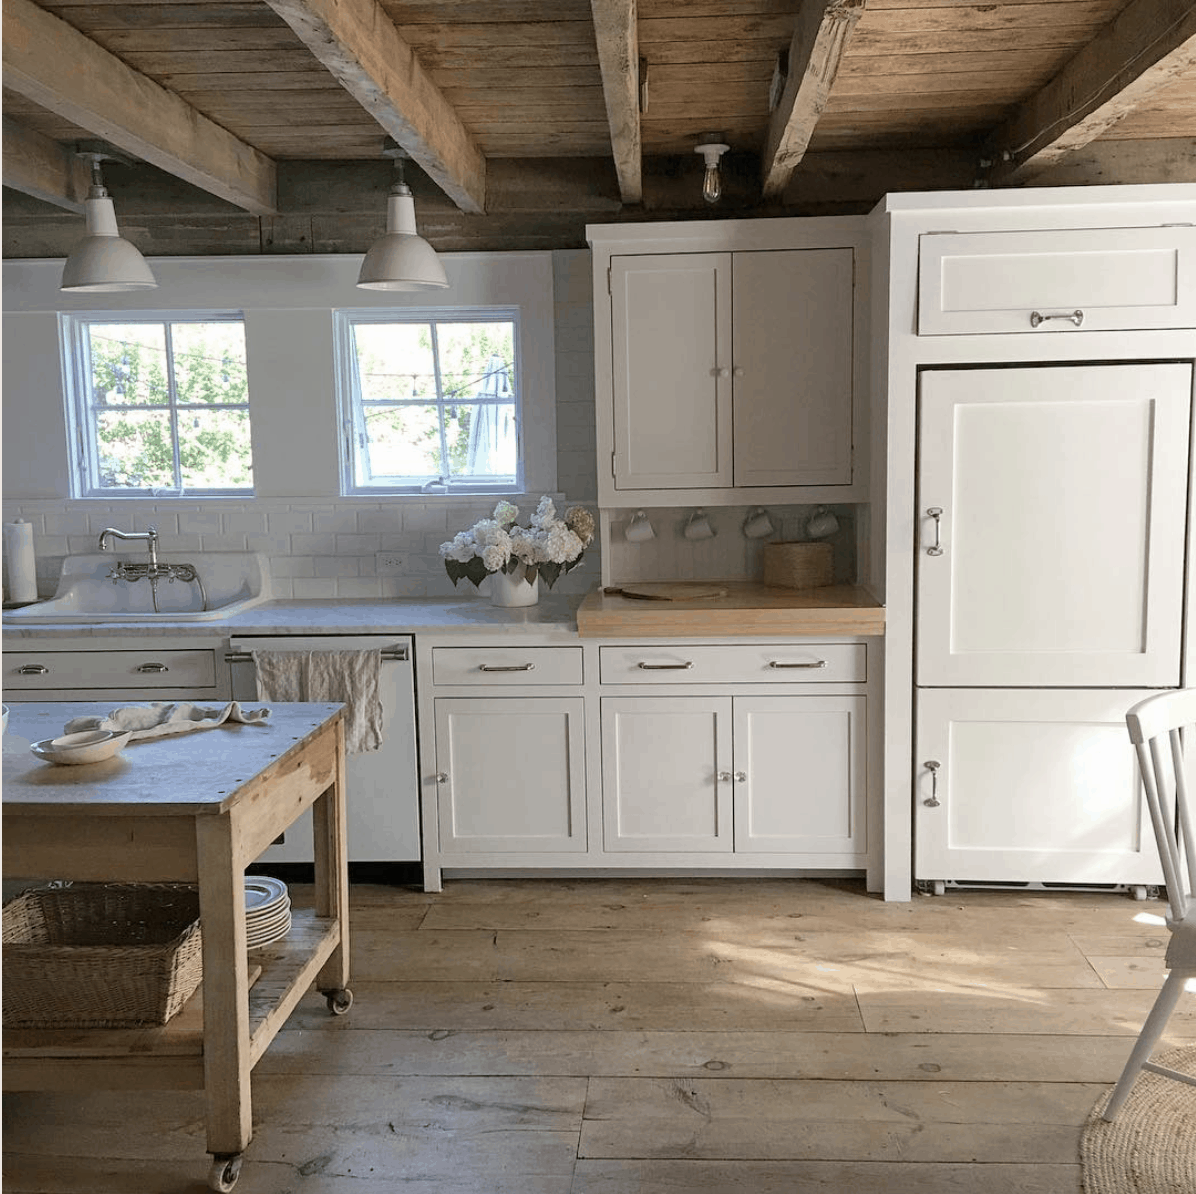 Farmhouse Kitchen Cabinets: Rustic Modern Farmhouse Kitchen Design Ideas